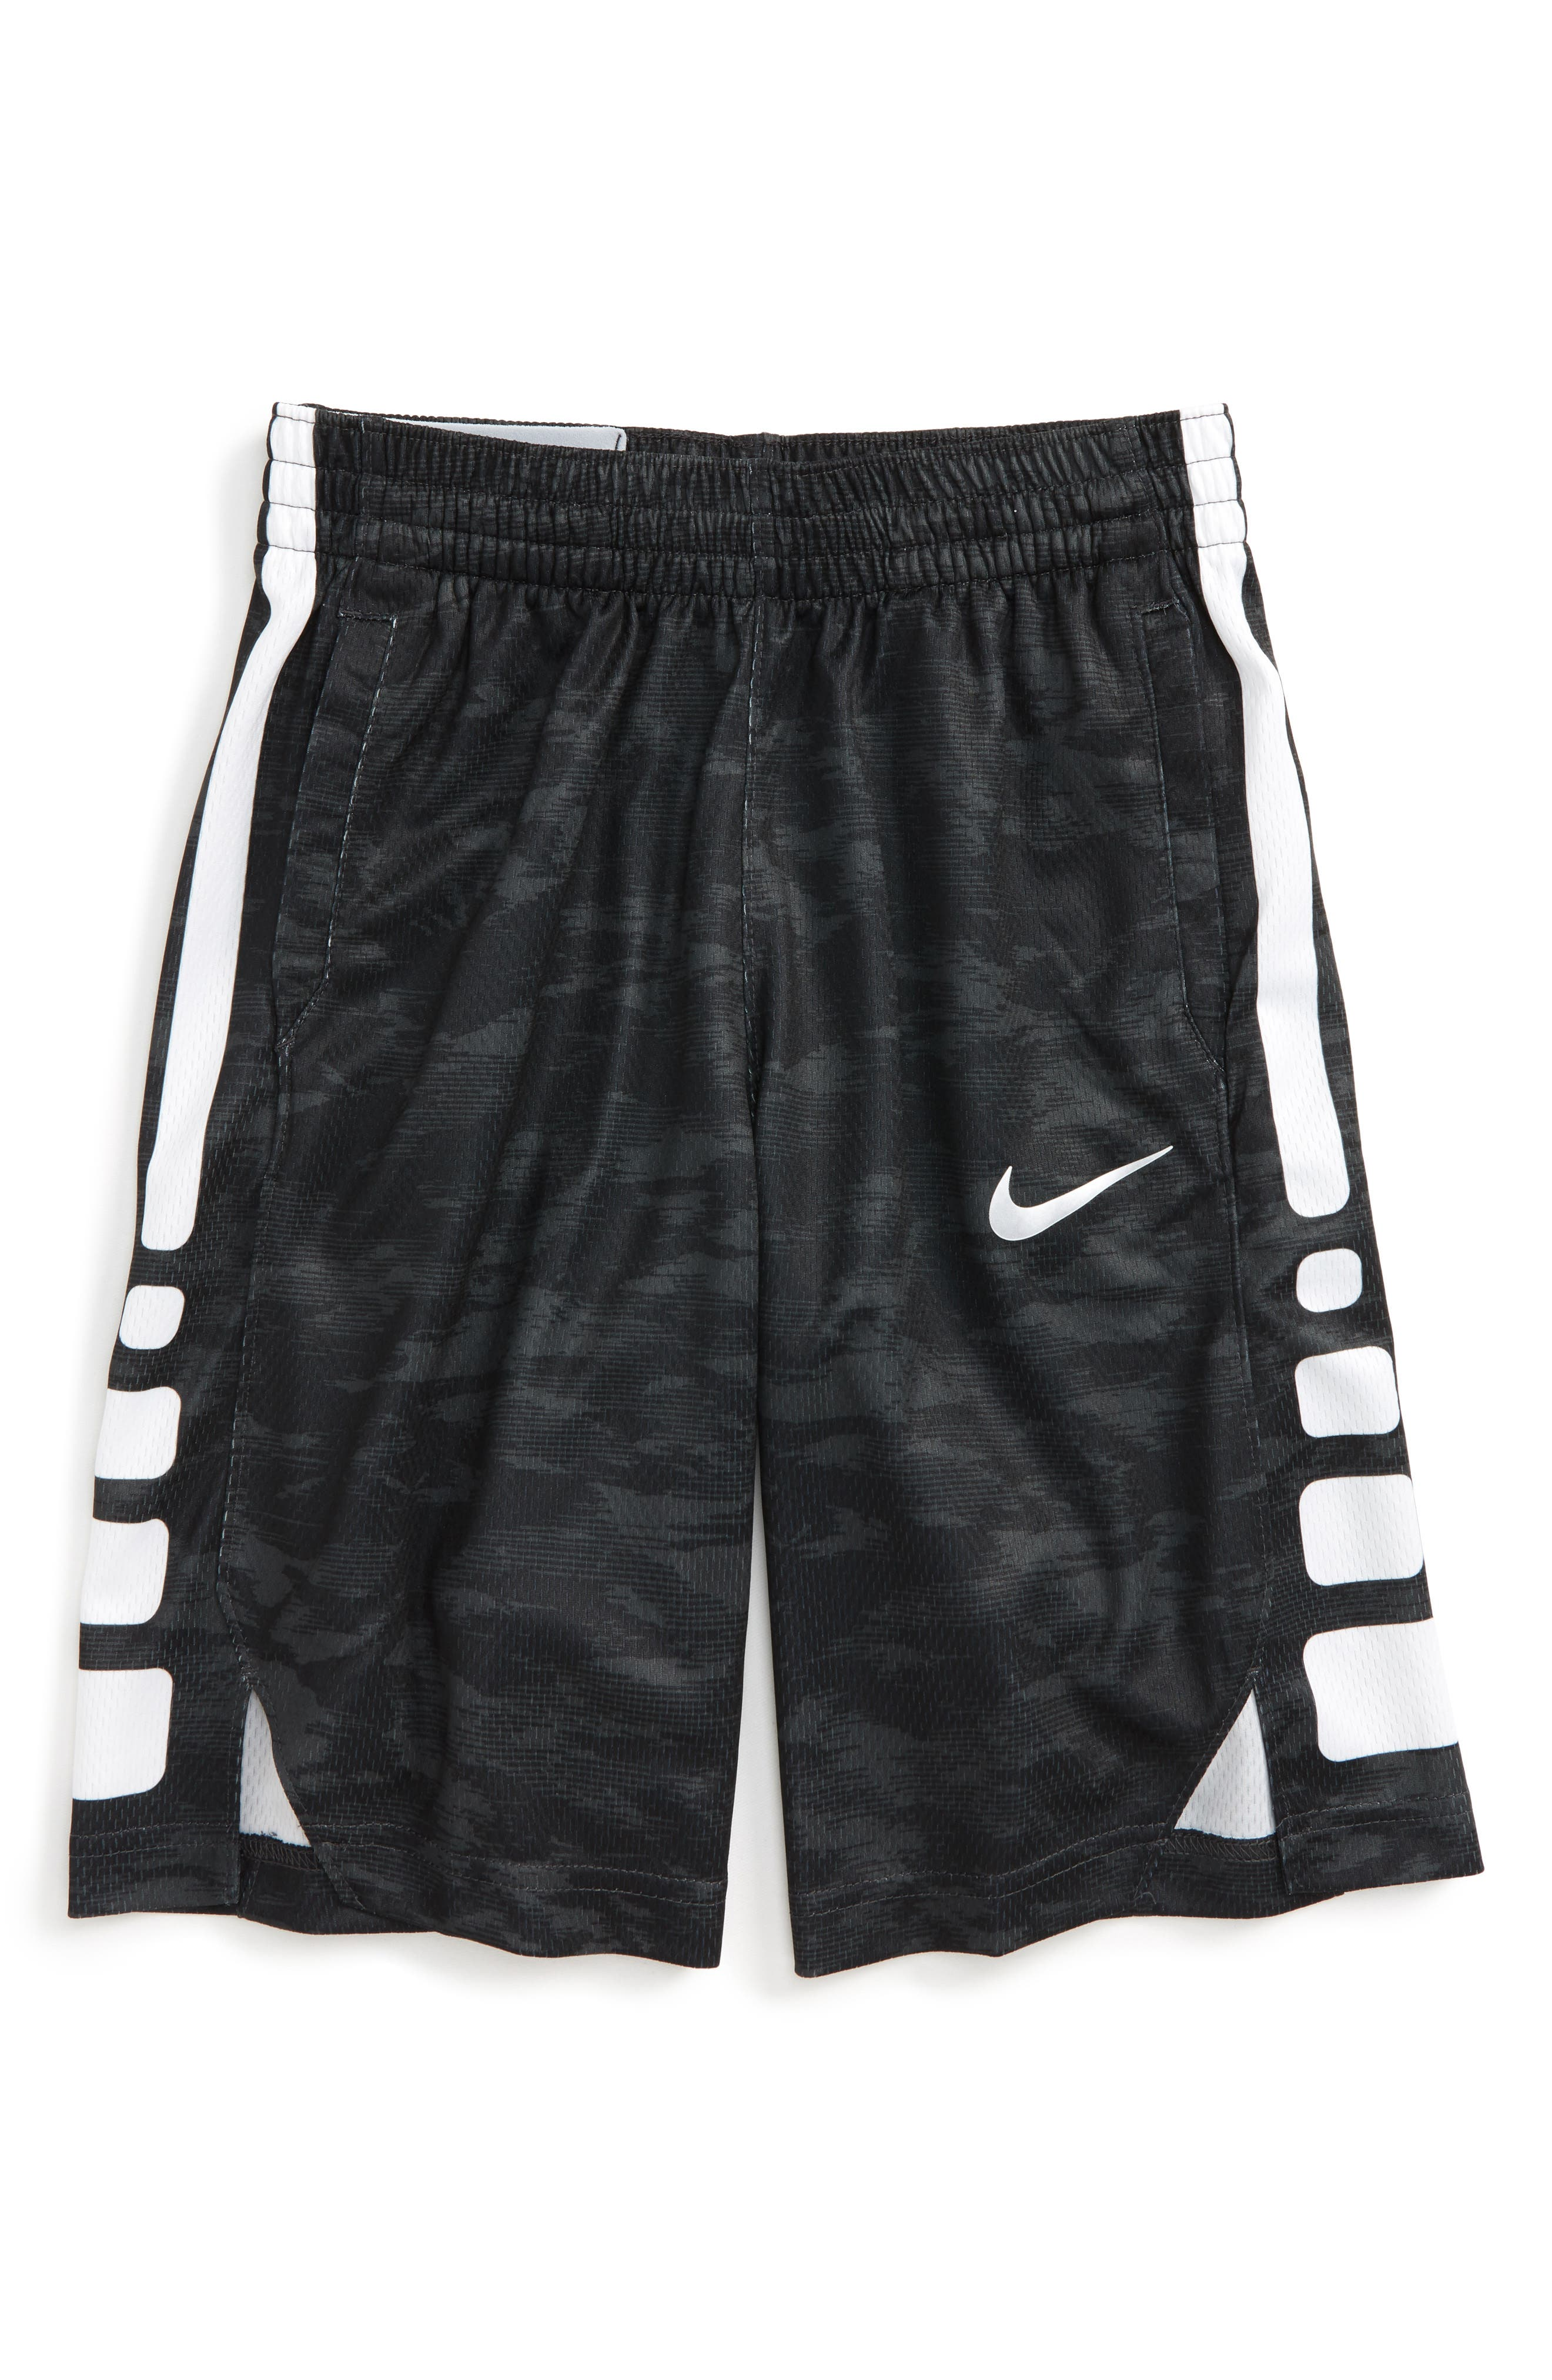 Dry Elite Basketball Shorts,                         Main,                         color, 010